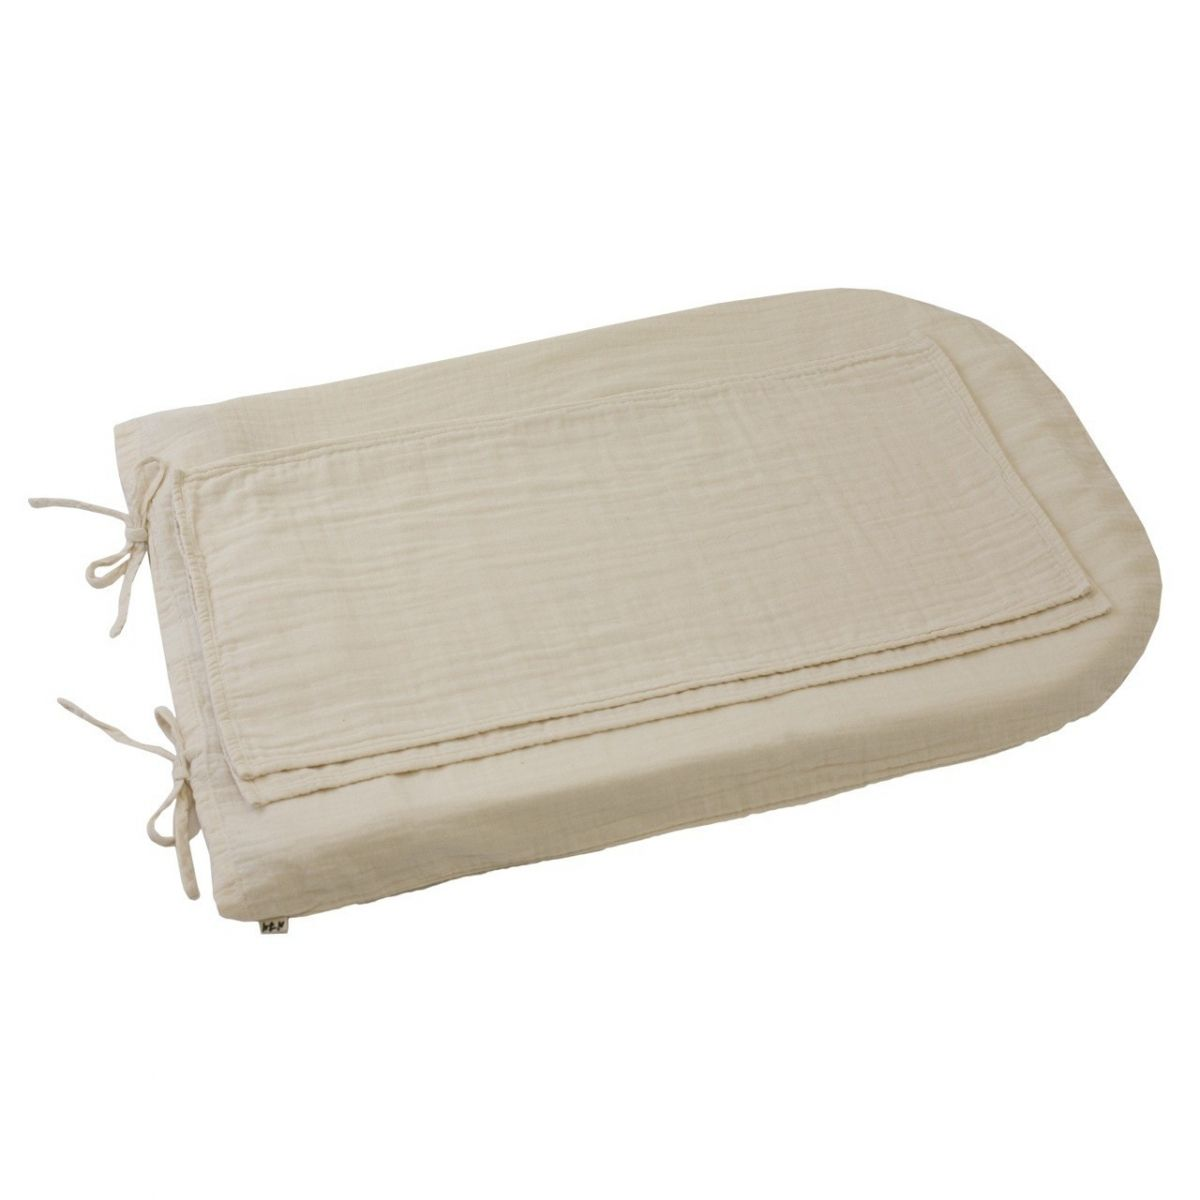 Changing Pad cover round natural - Numero 74